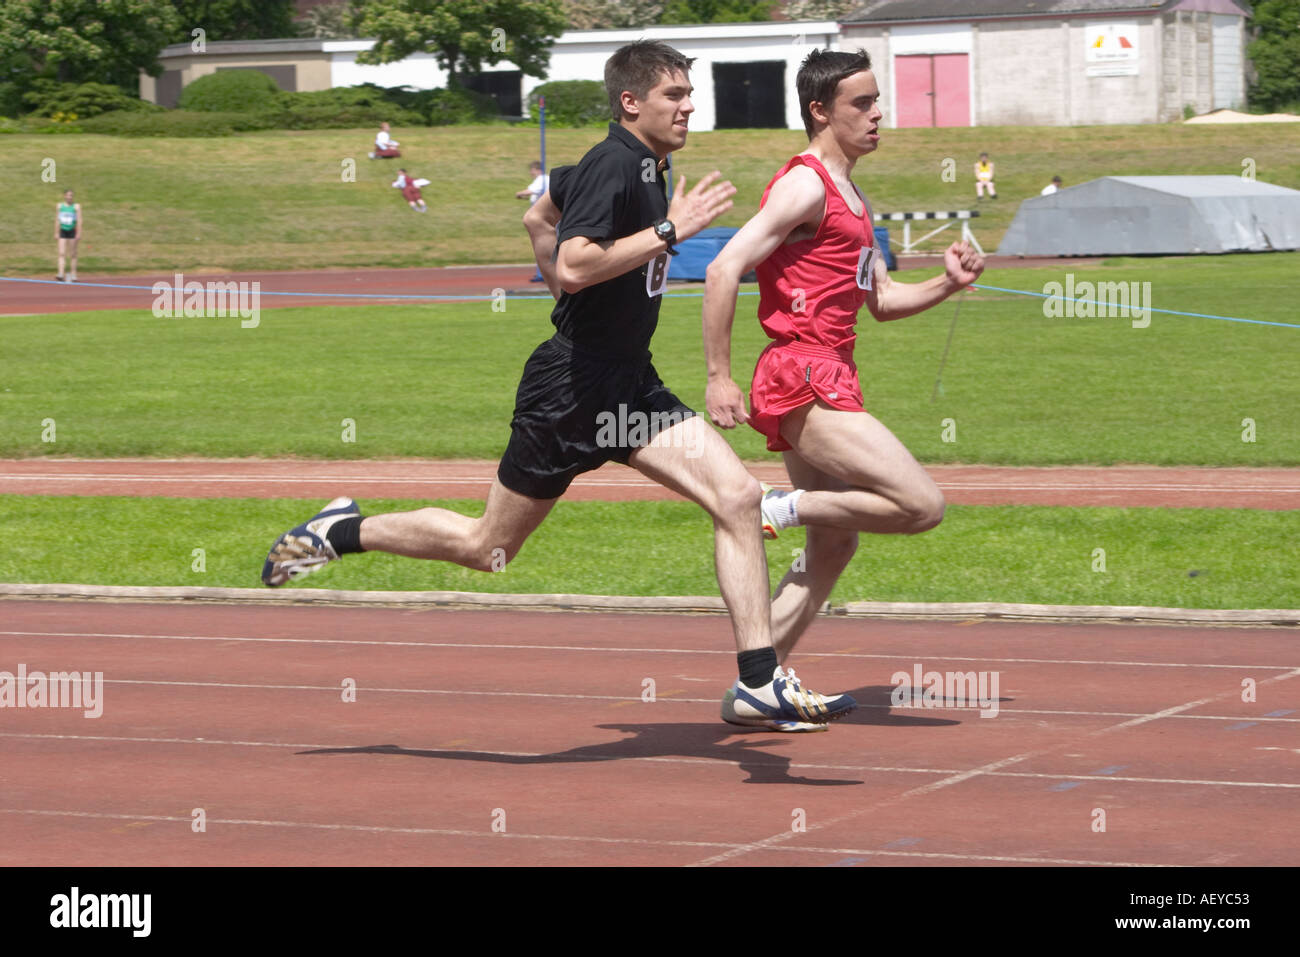 runners at an athletics competition - Stock Image